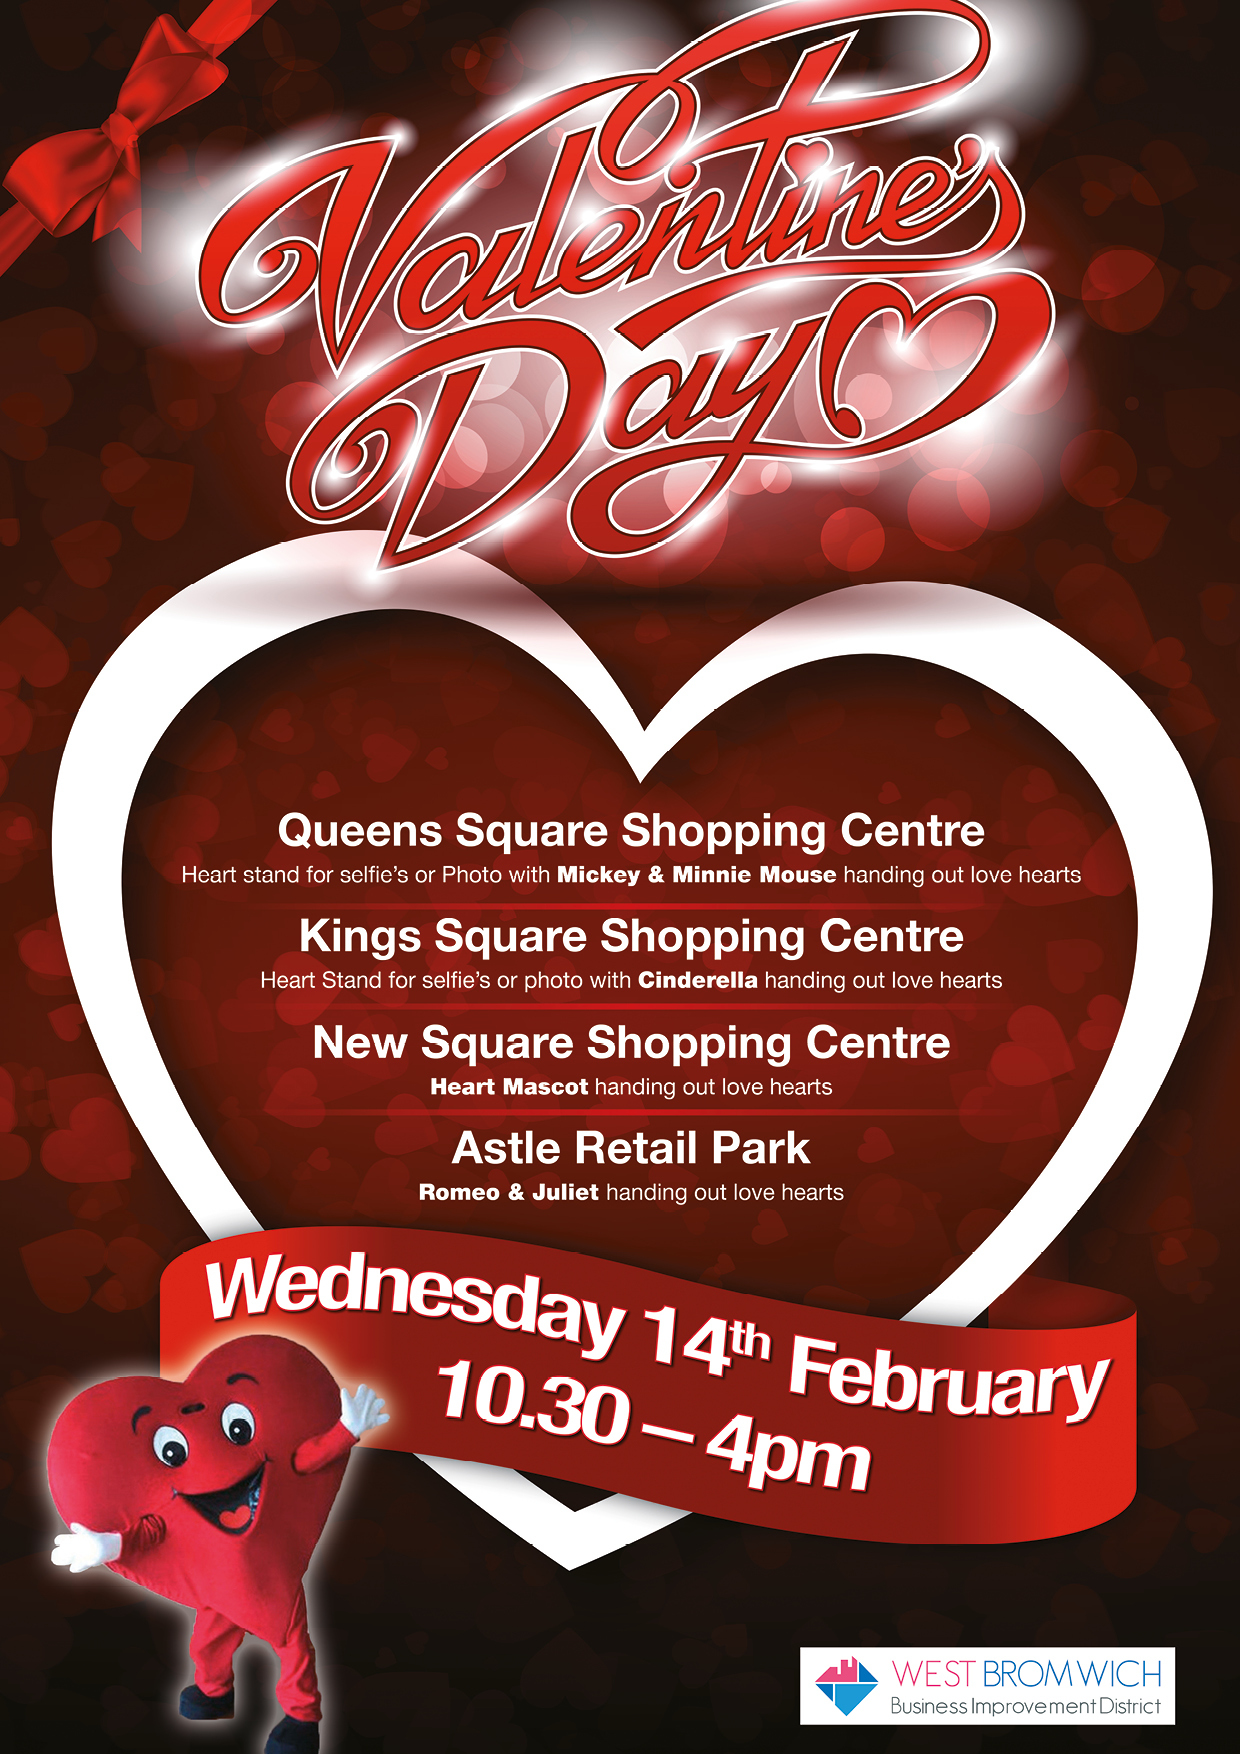 Spreading the love in West Bromwich Town this Wednesday